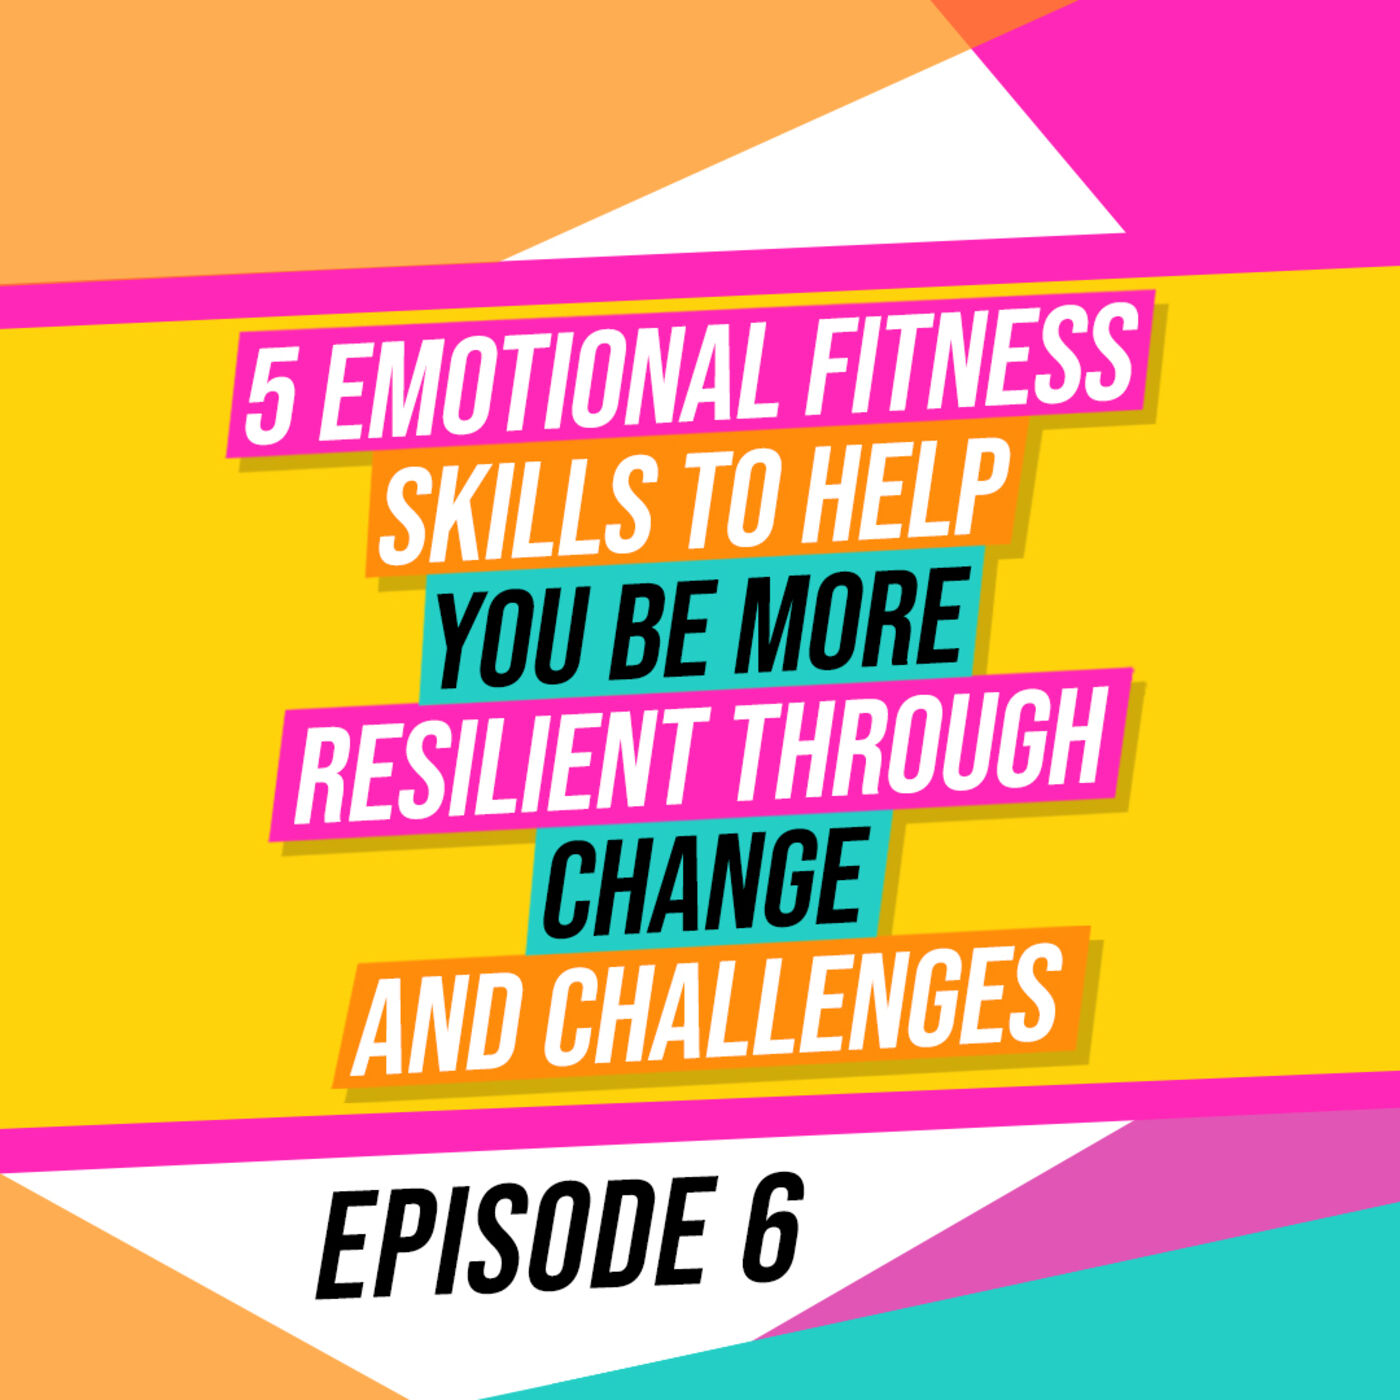 5 emotional fitness skills to help you be more resilient through challenges